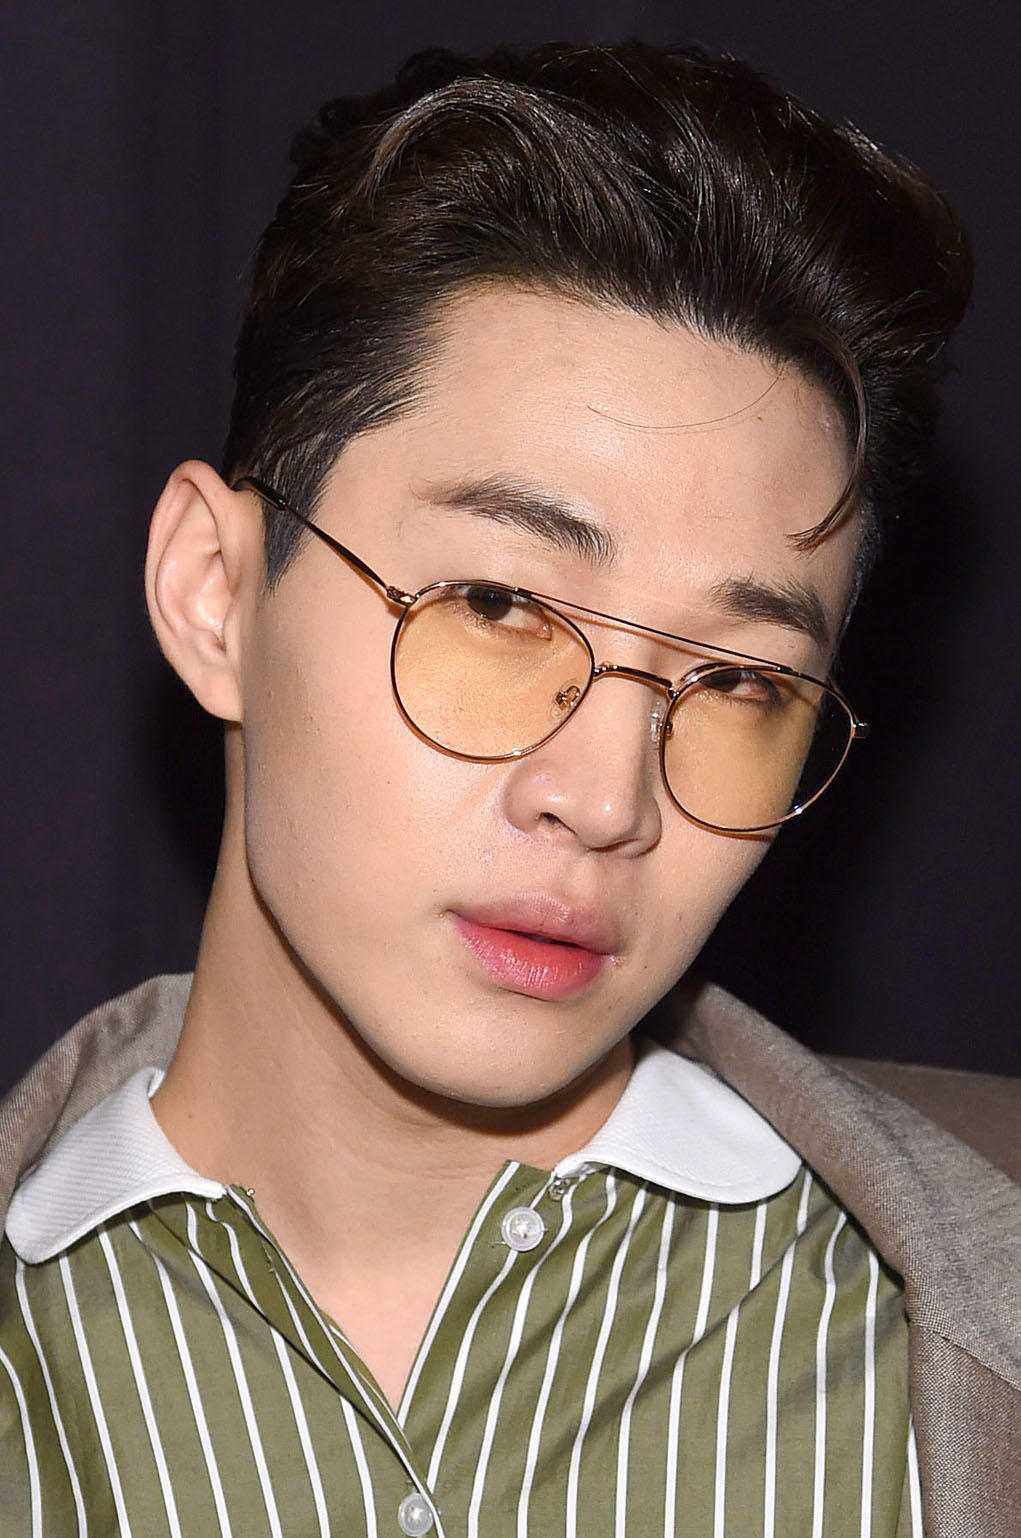 Henry Lau at the Marc Jacobs Fall 2019 show in New York City.